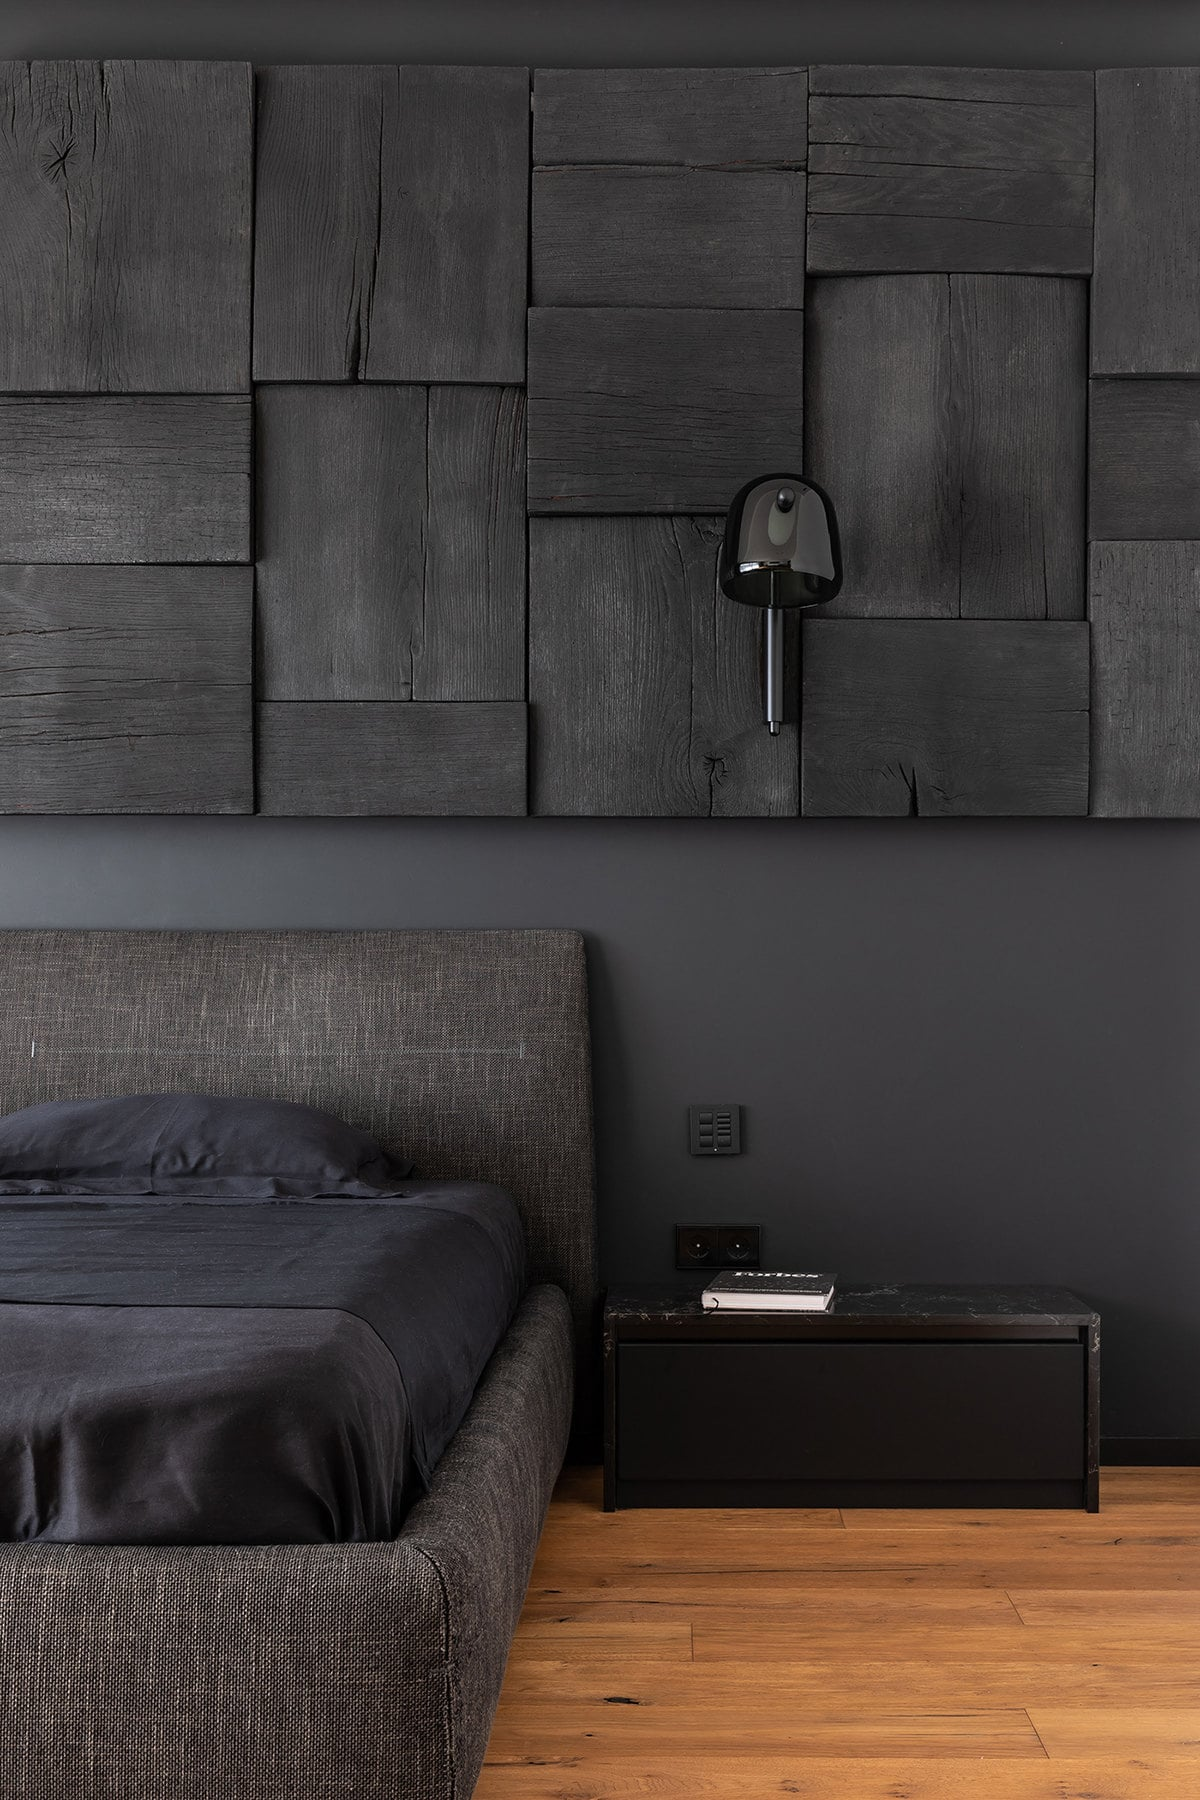 The black cushioned headboard of the bed is also flanked with small black bedside tables and has a matte black wall below the textured decorative black wall.